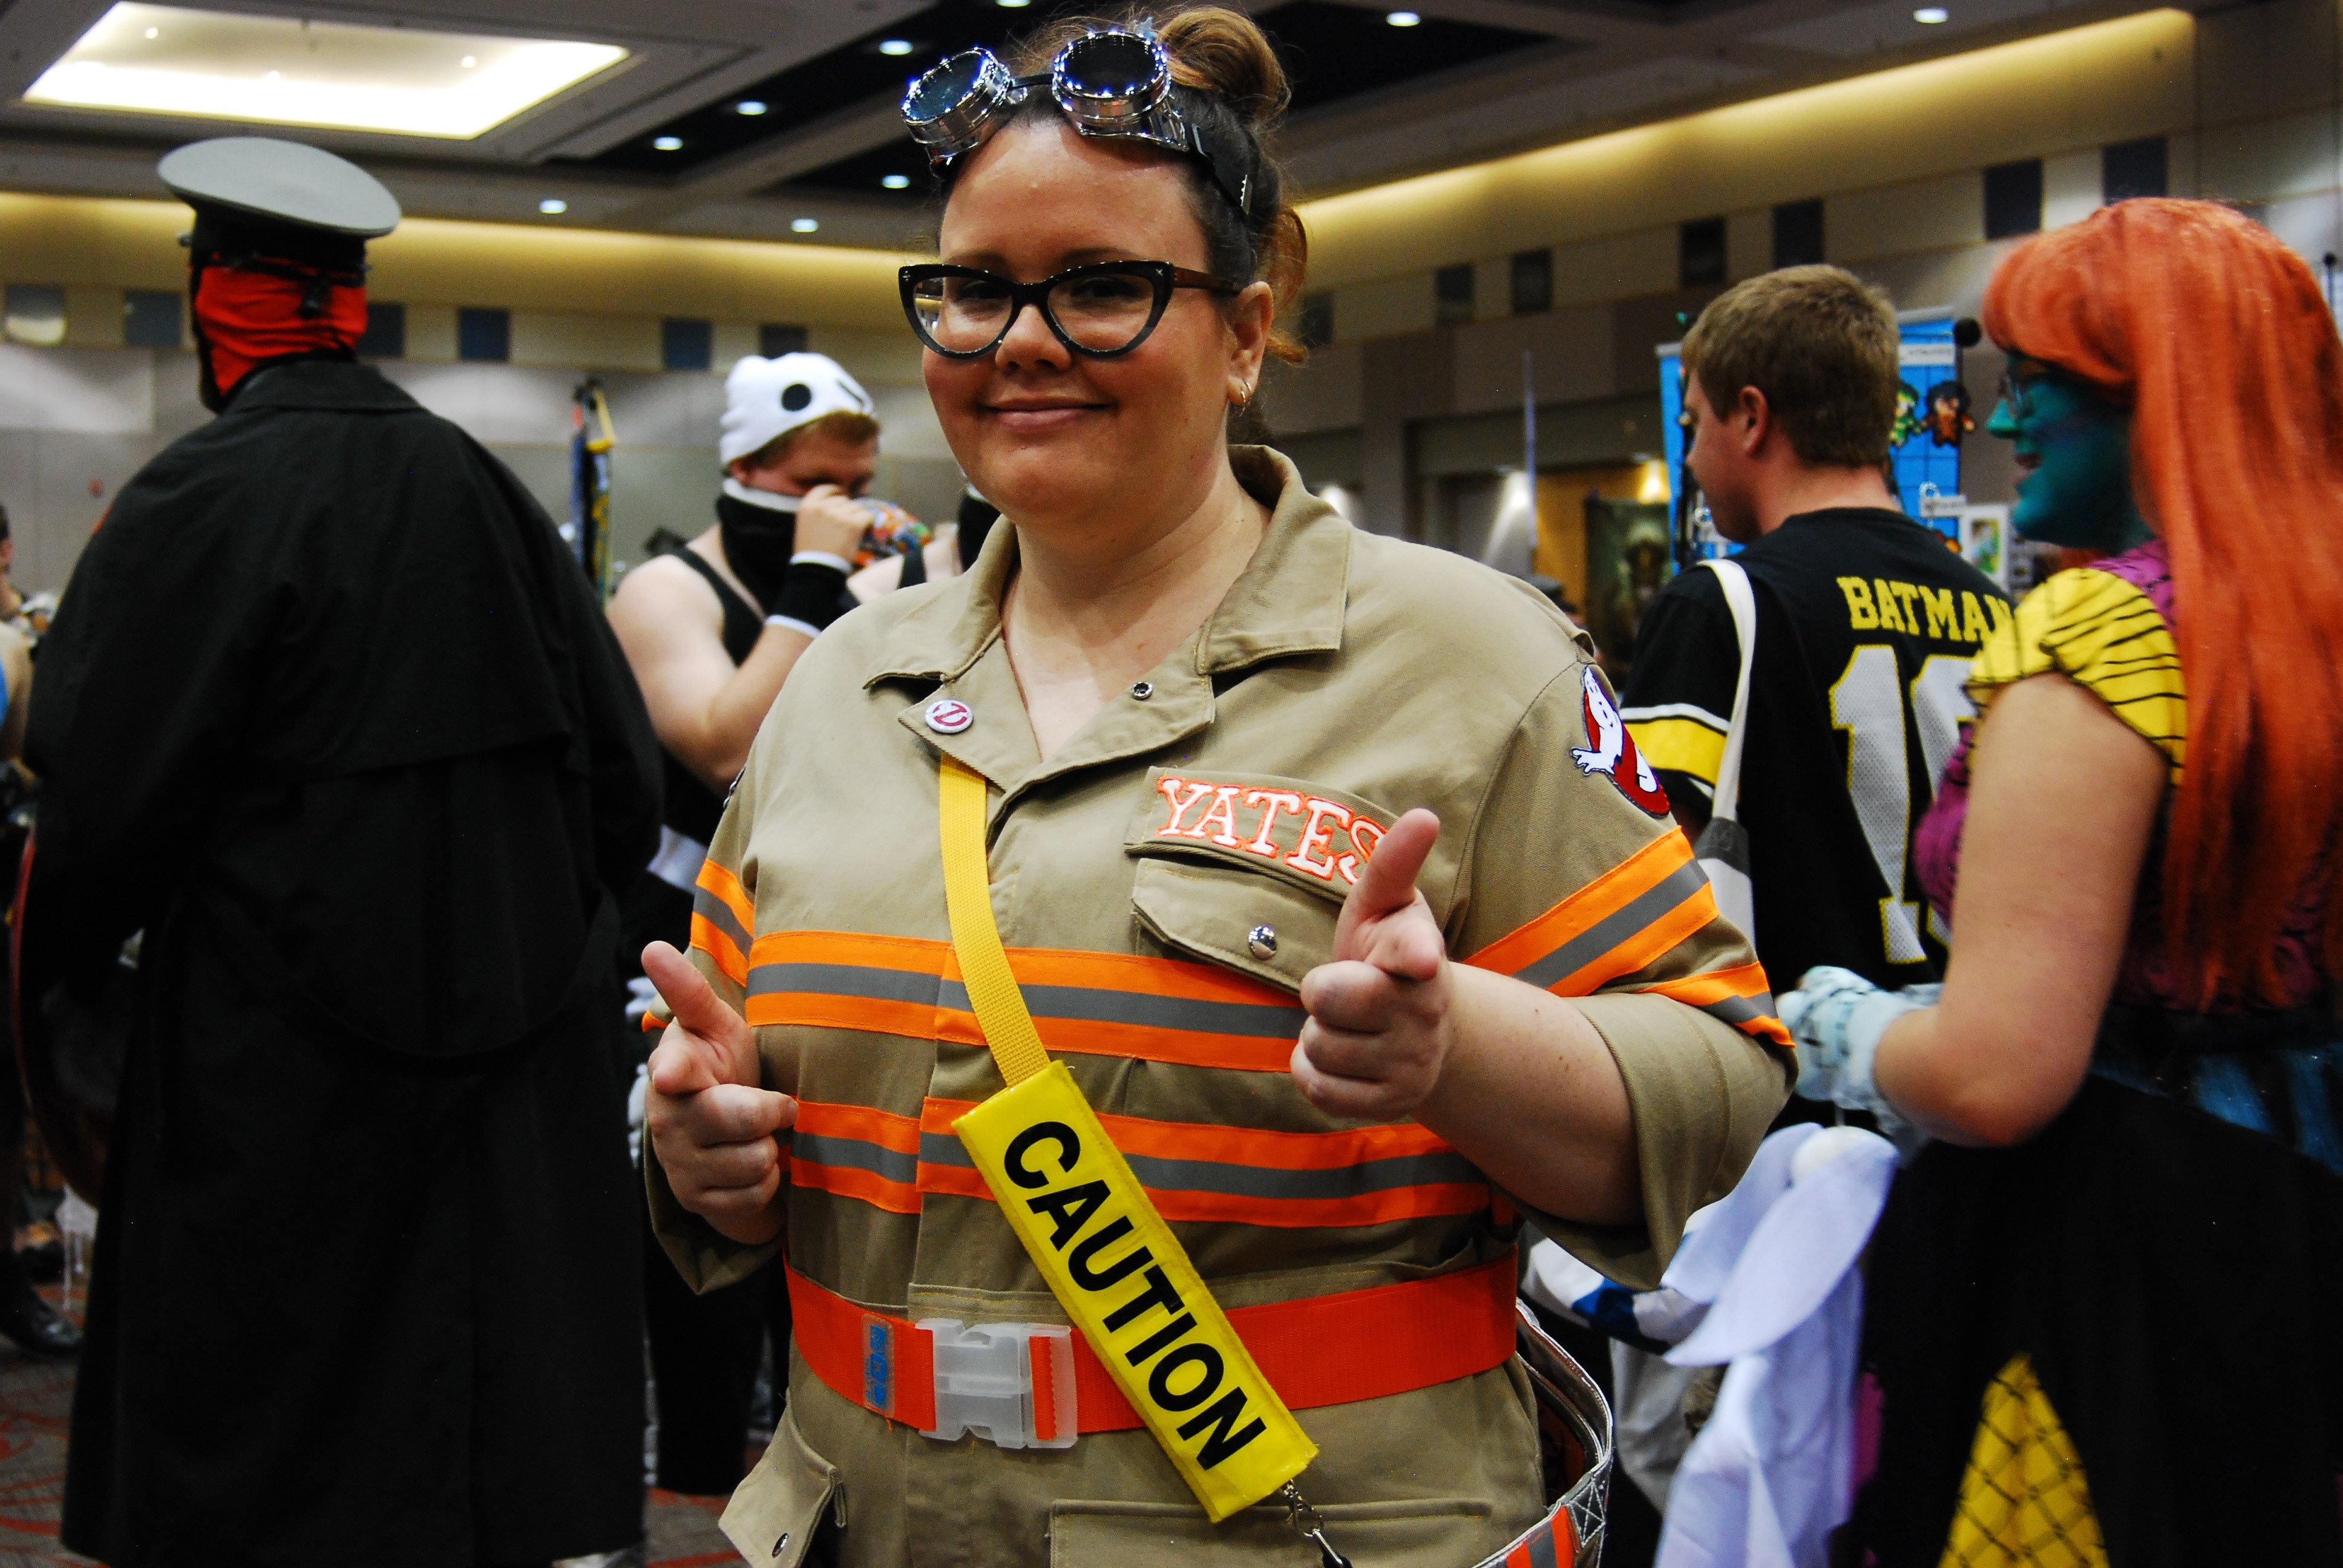 Angela Turner as a Ghostbuster at the 2017 Forest City ComiCon